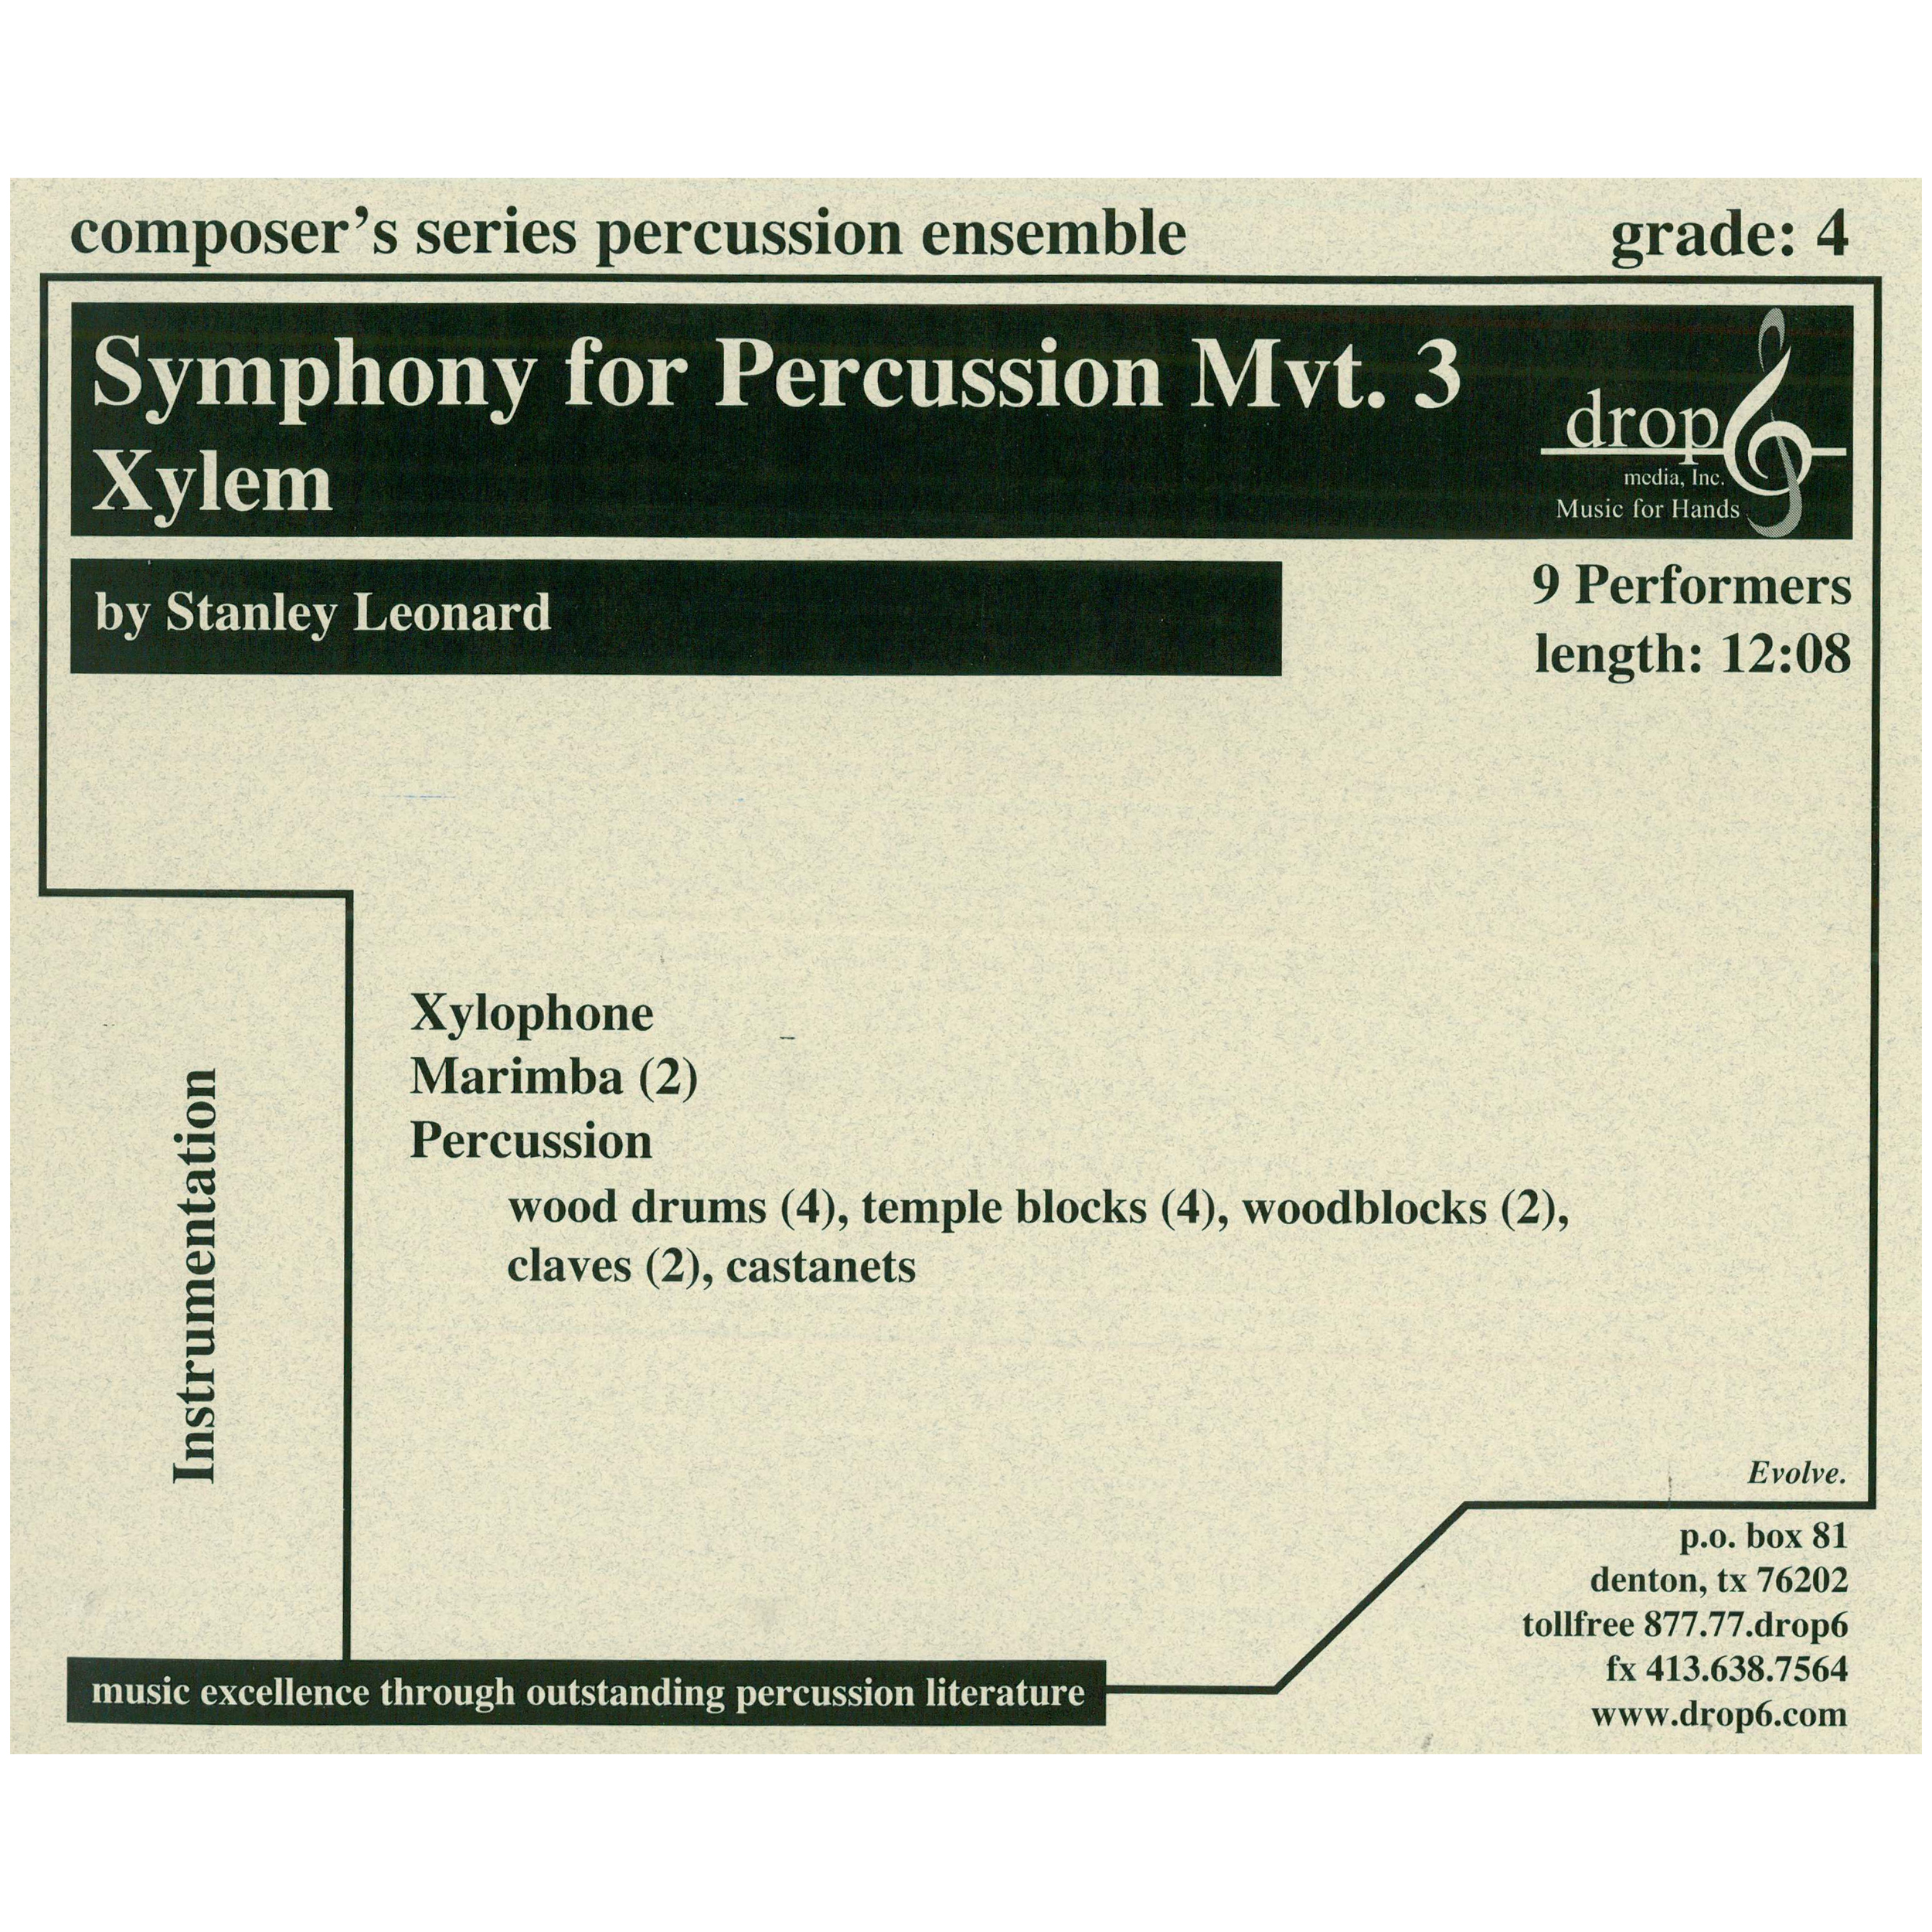 Symphony for Percussion, Mvt. 3: Xylem by Stanley Leonard